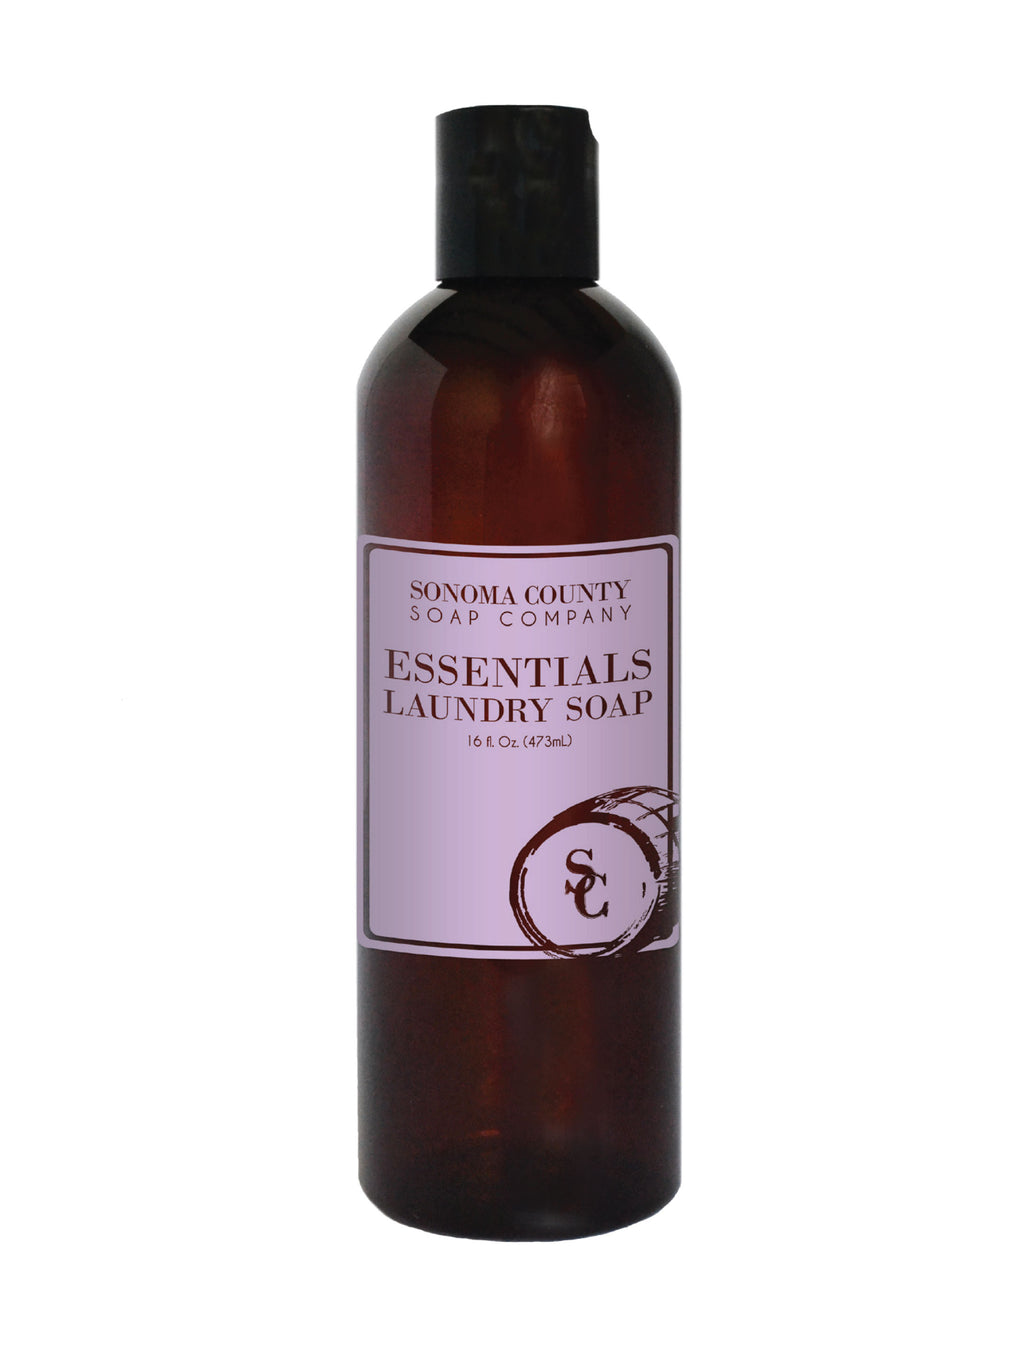 Essentials Laundry Soap - 16 oz.